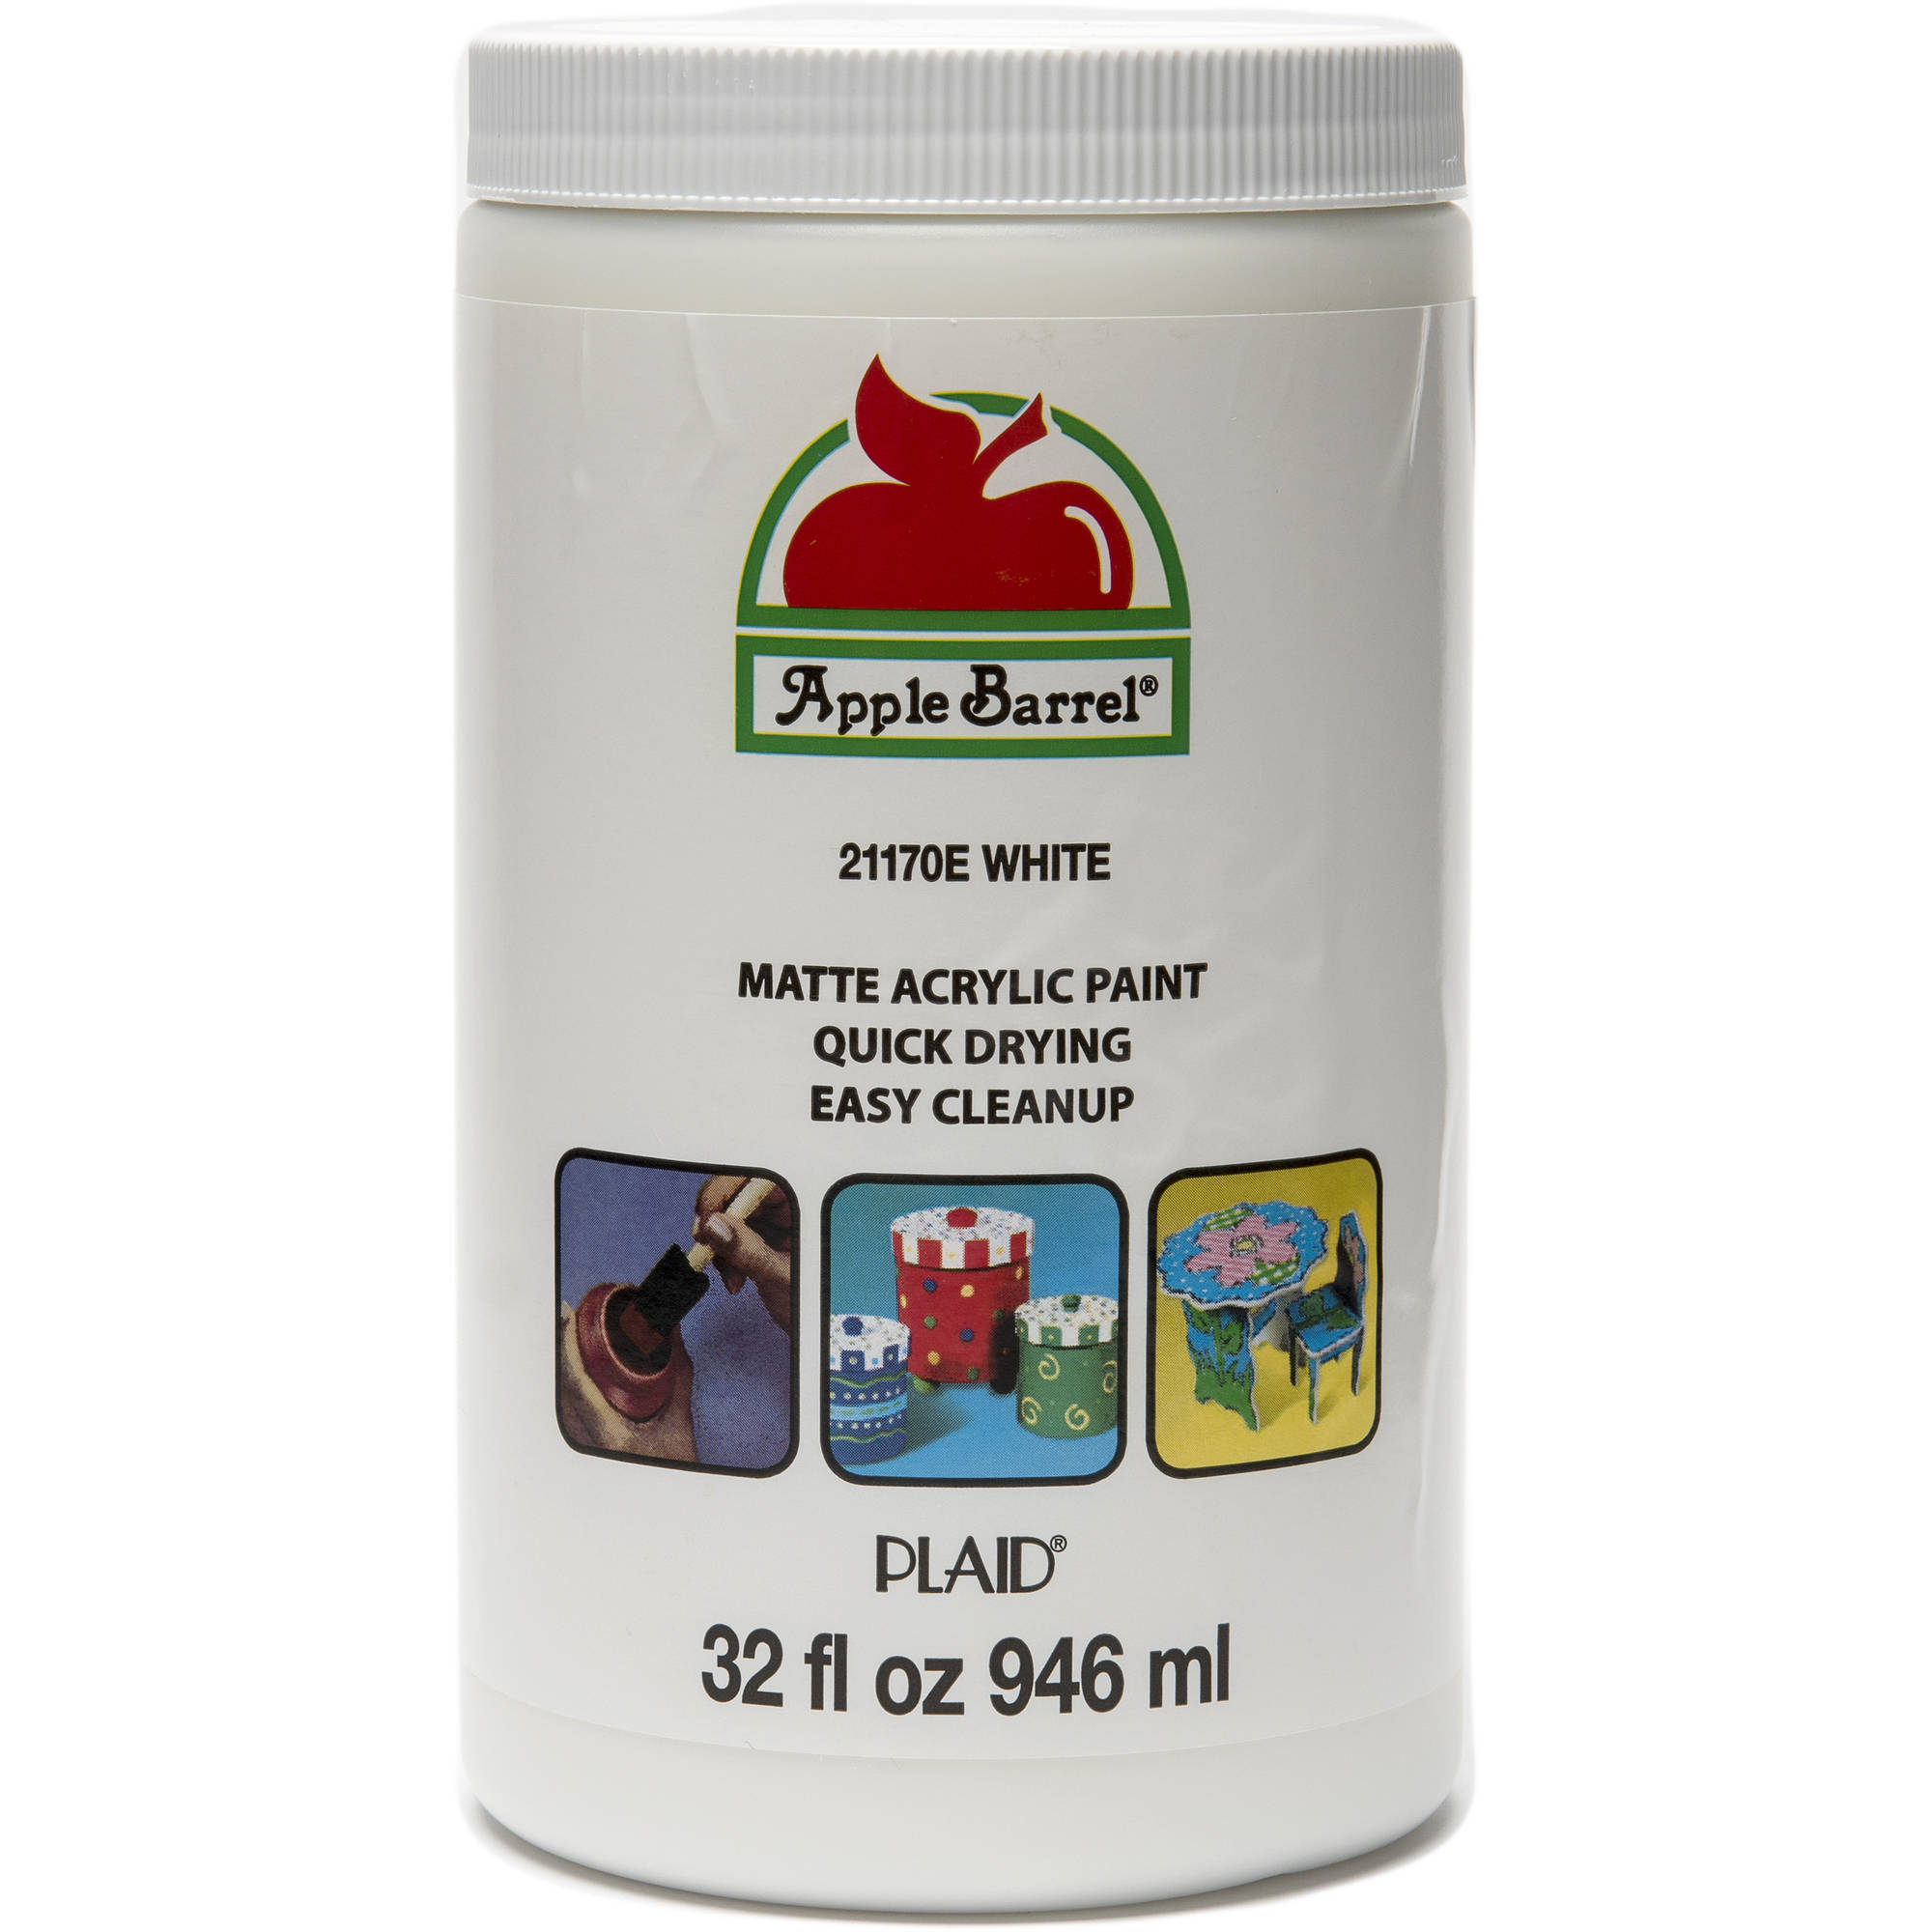 Apple Barrel Matte Finish Acrylic Craft Paint by Plaid, White, 32 oz.